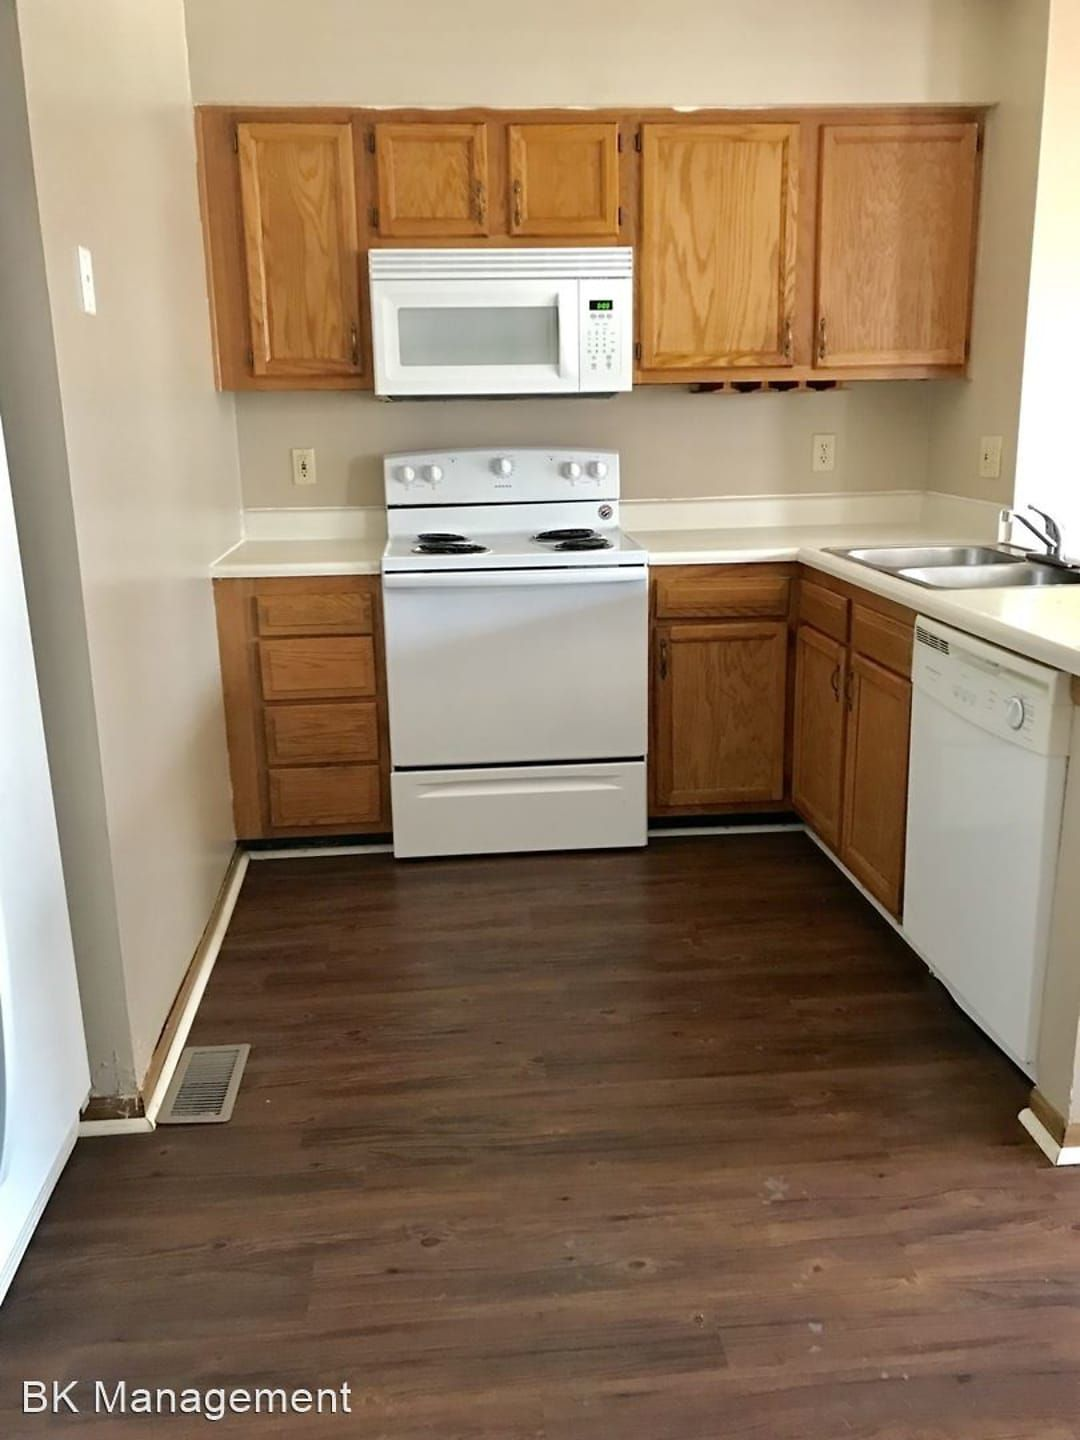 523 Duroc Ct In 2020 Apartments For Rent Townhomes For Rent Apartment Guide